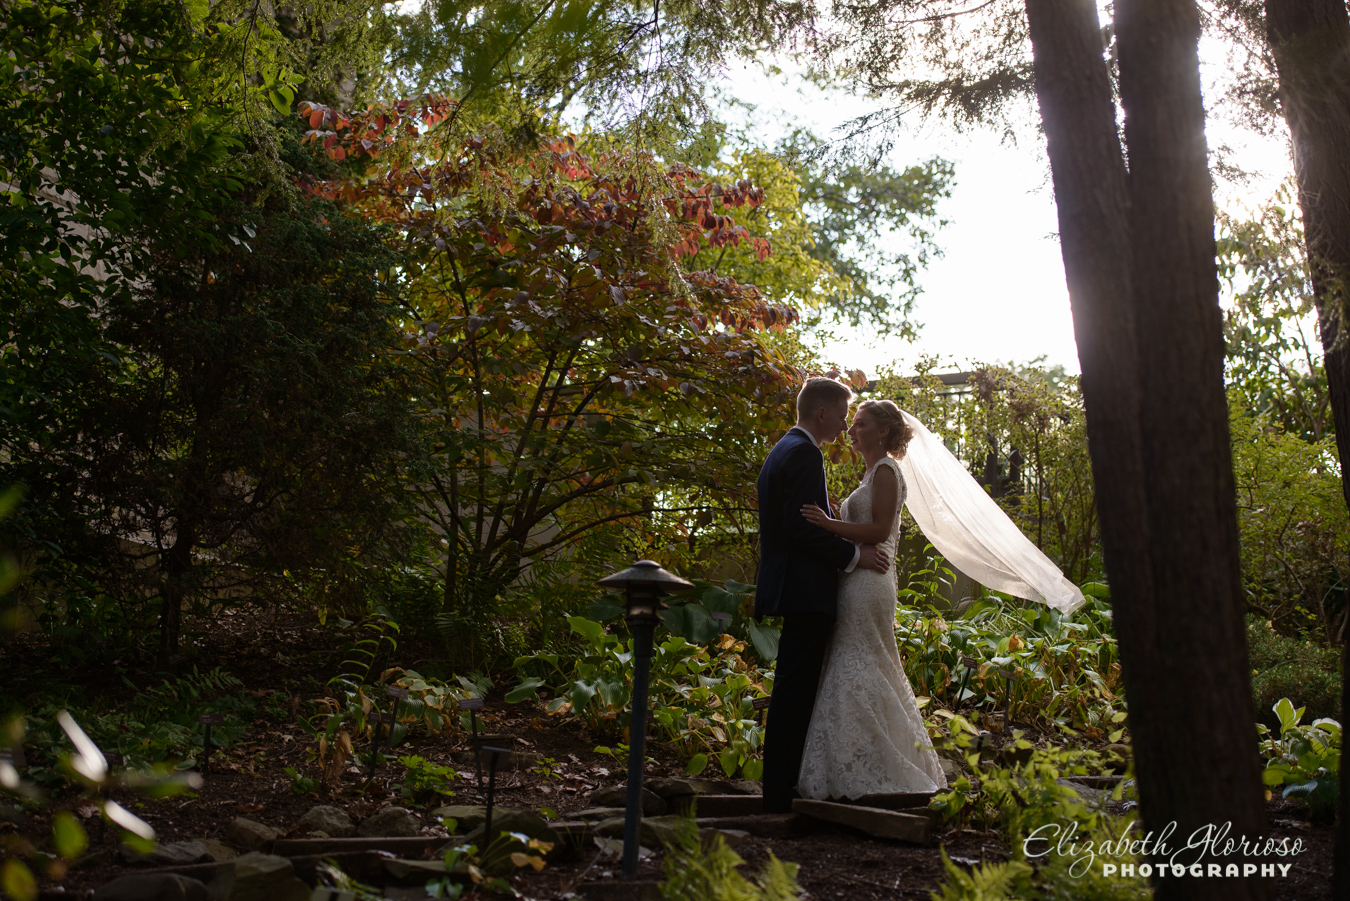 Wedding portraits at Japanese Garden Cleveland Botanical Garden